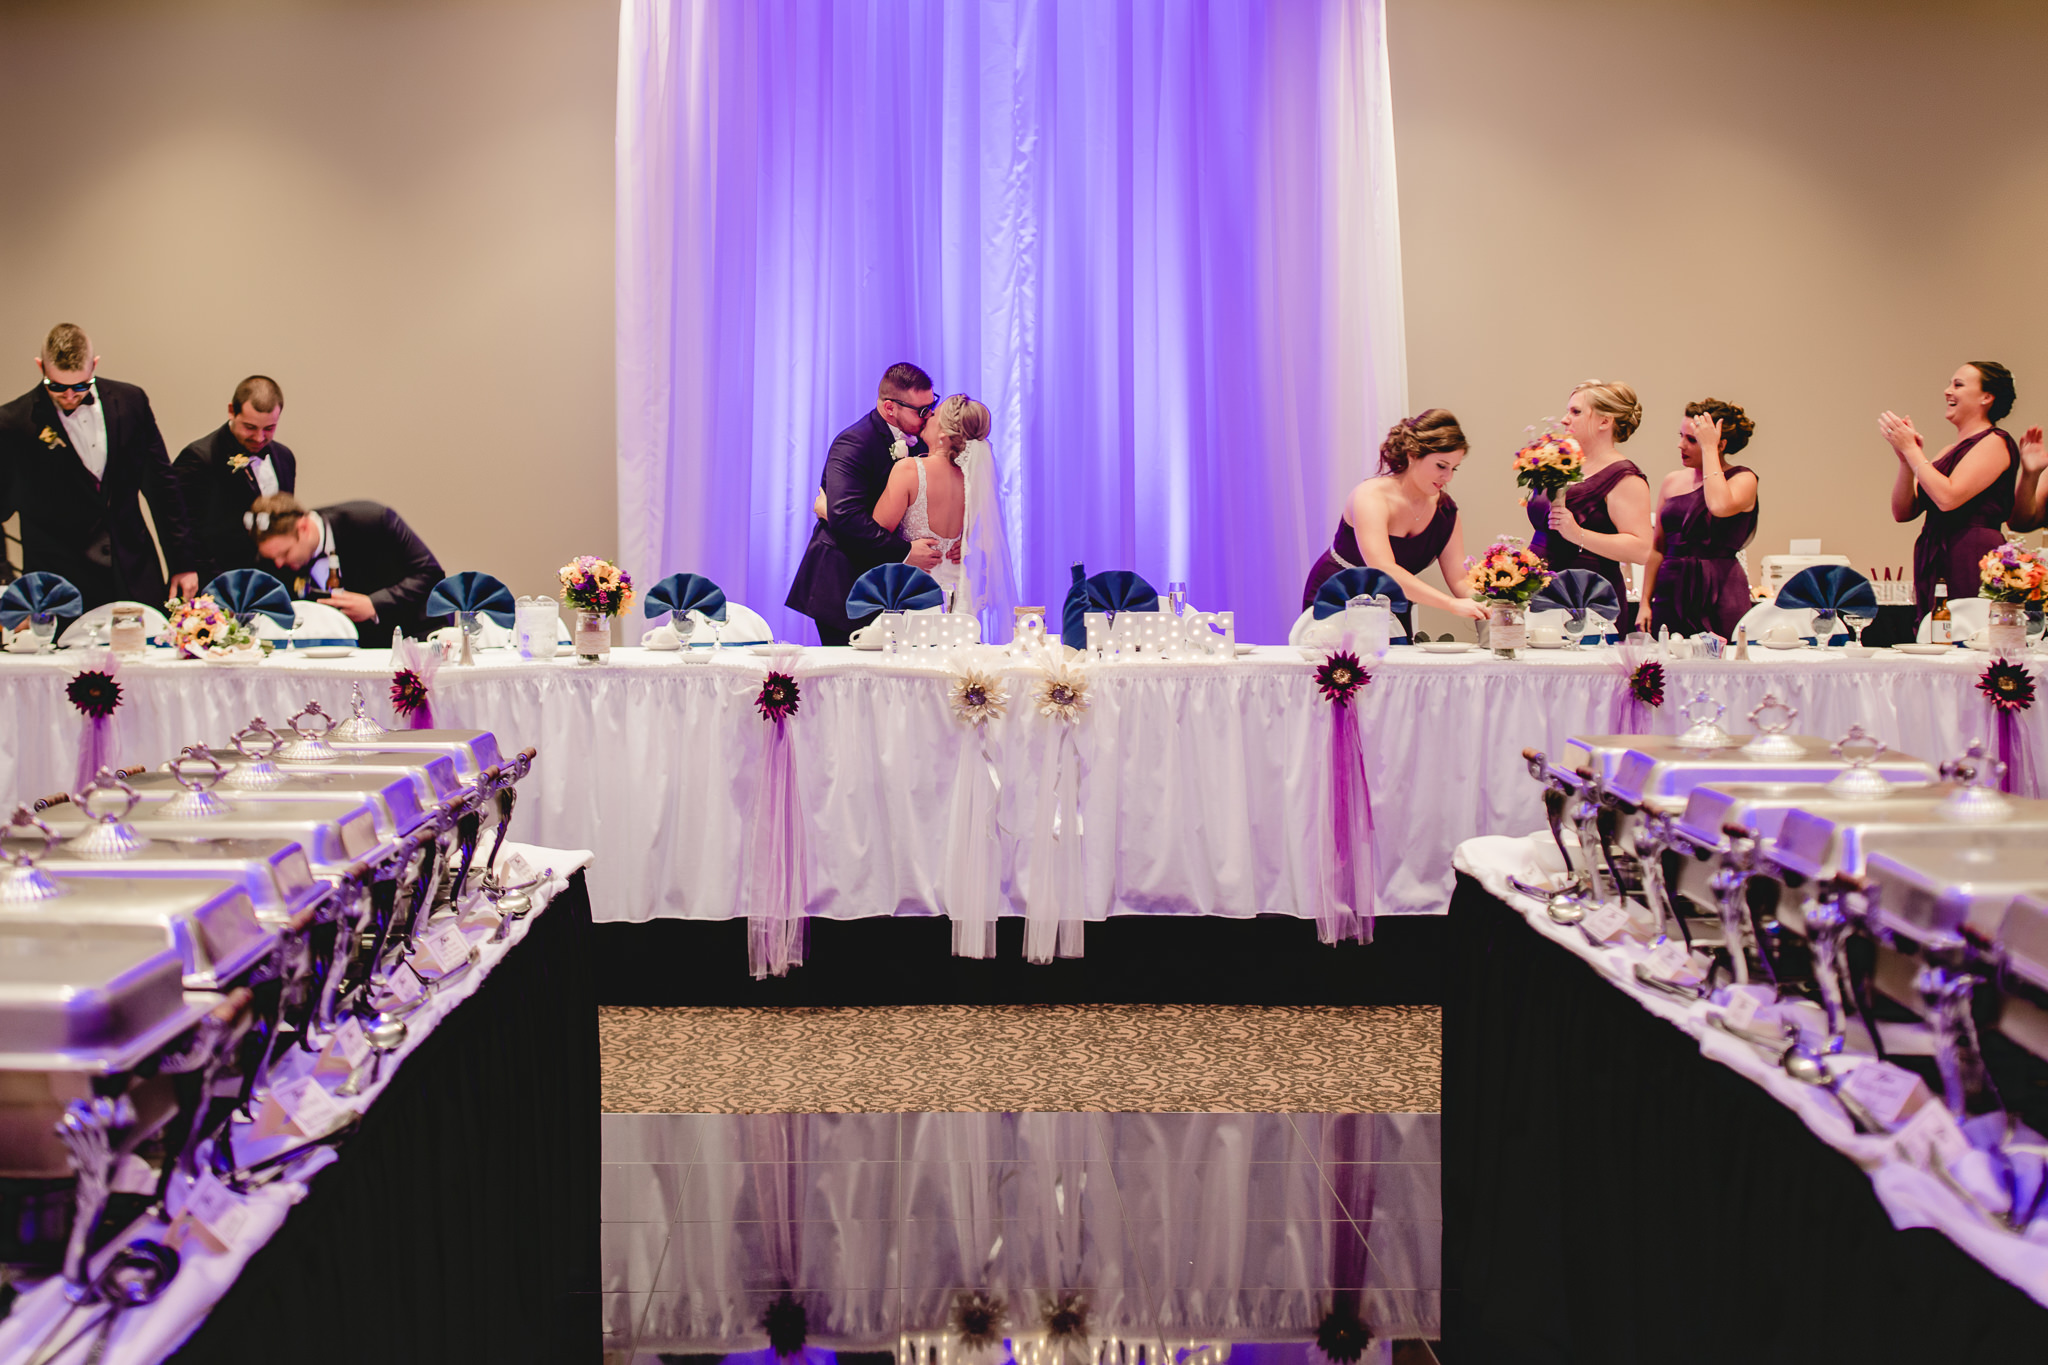 Bride and groom kiss during intros at their Fez wedding reception